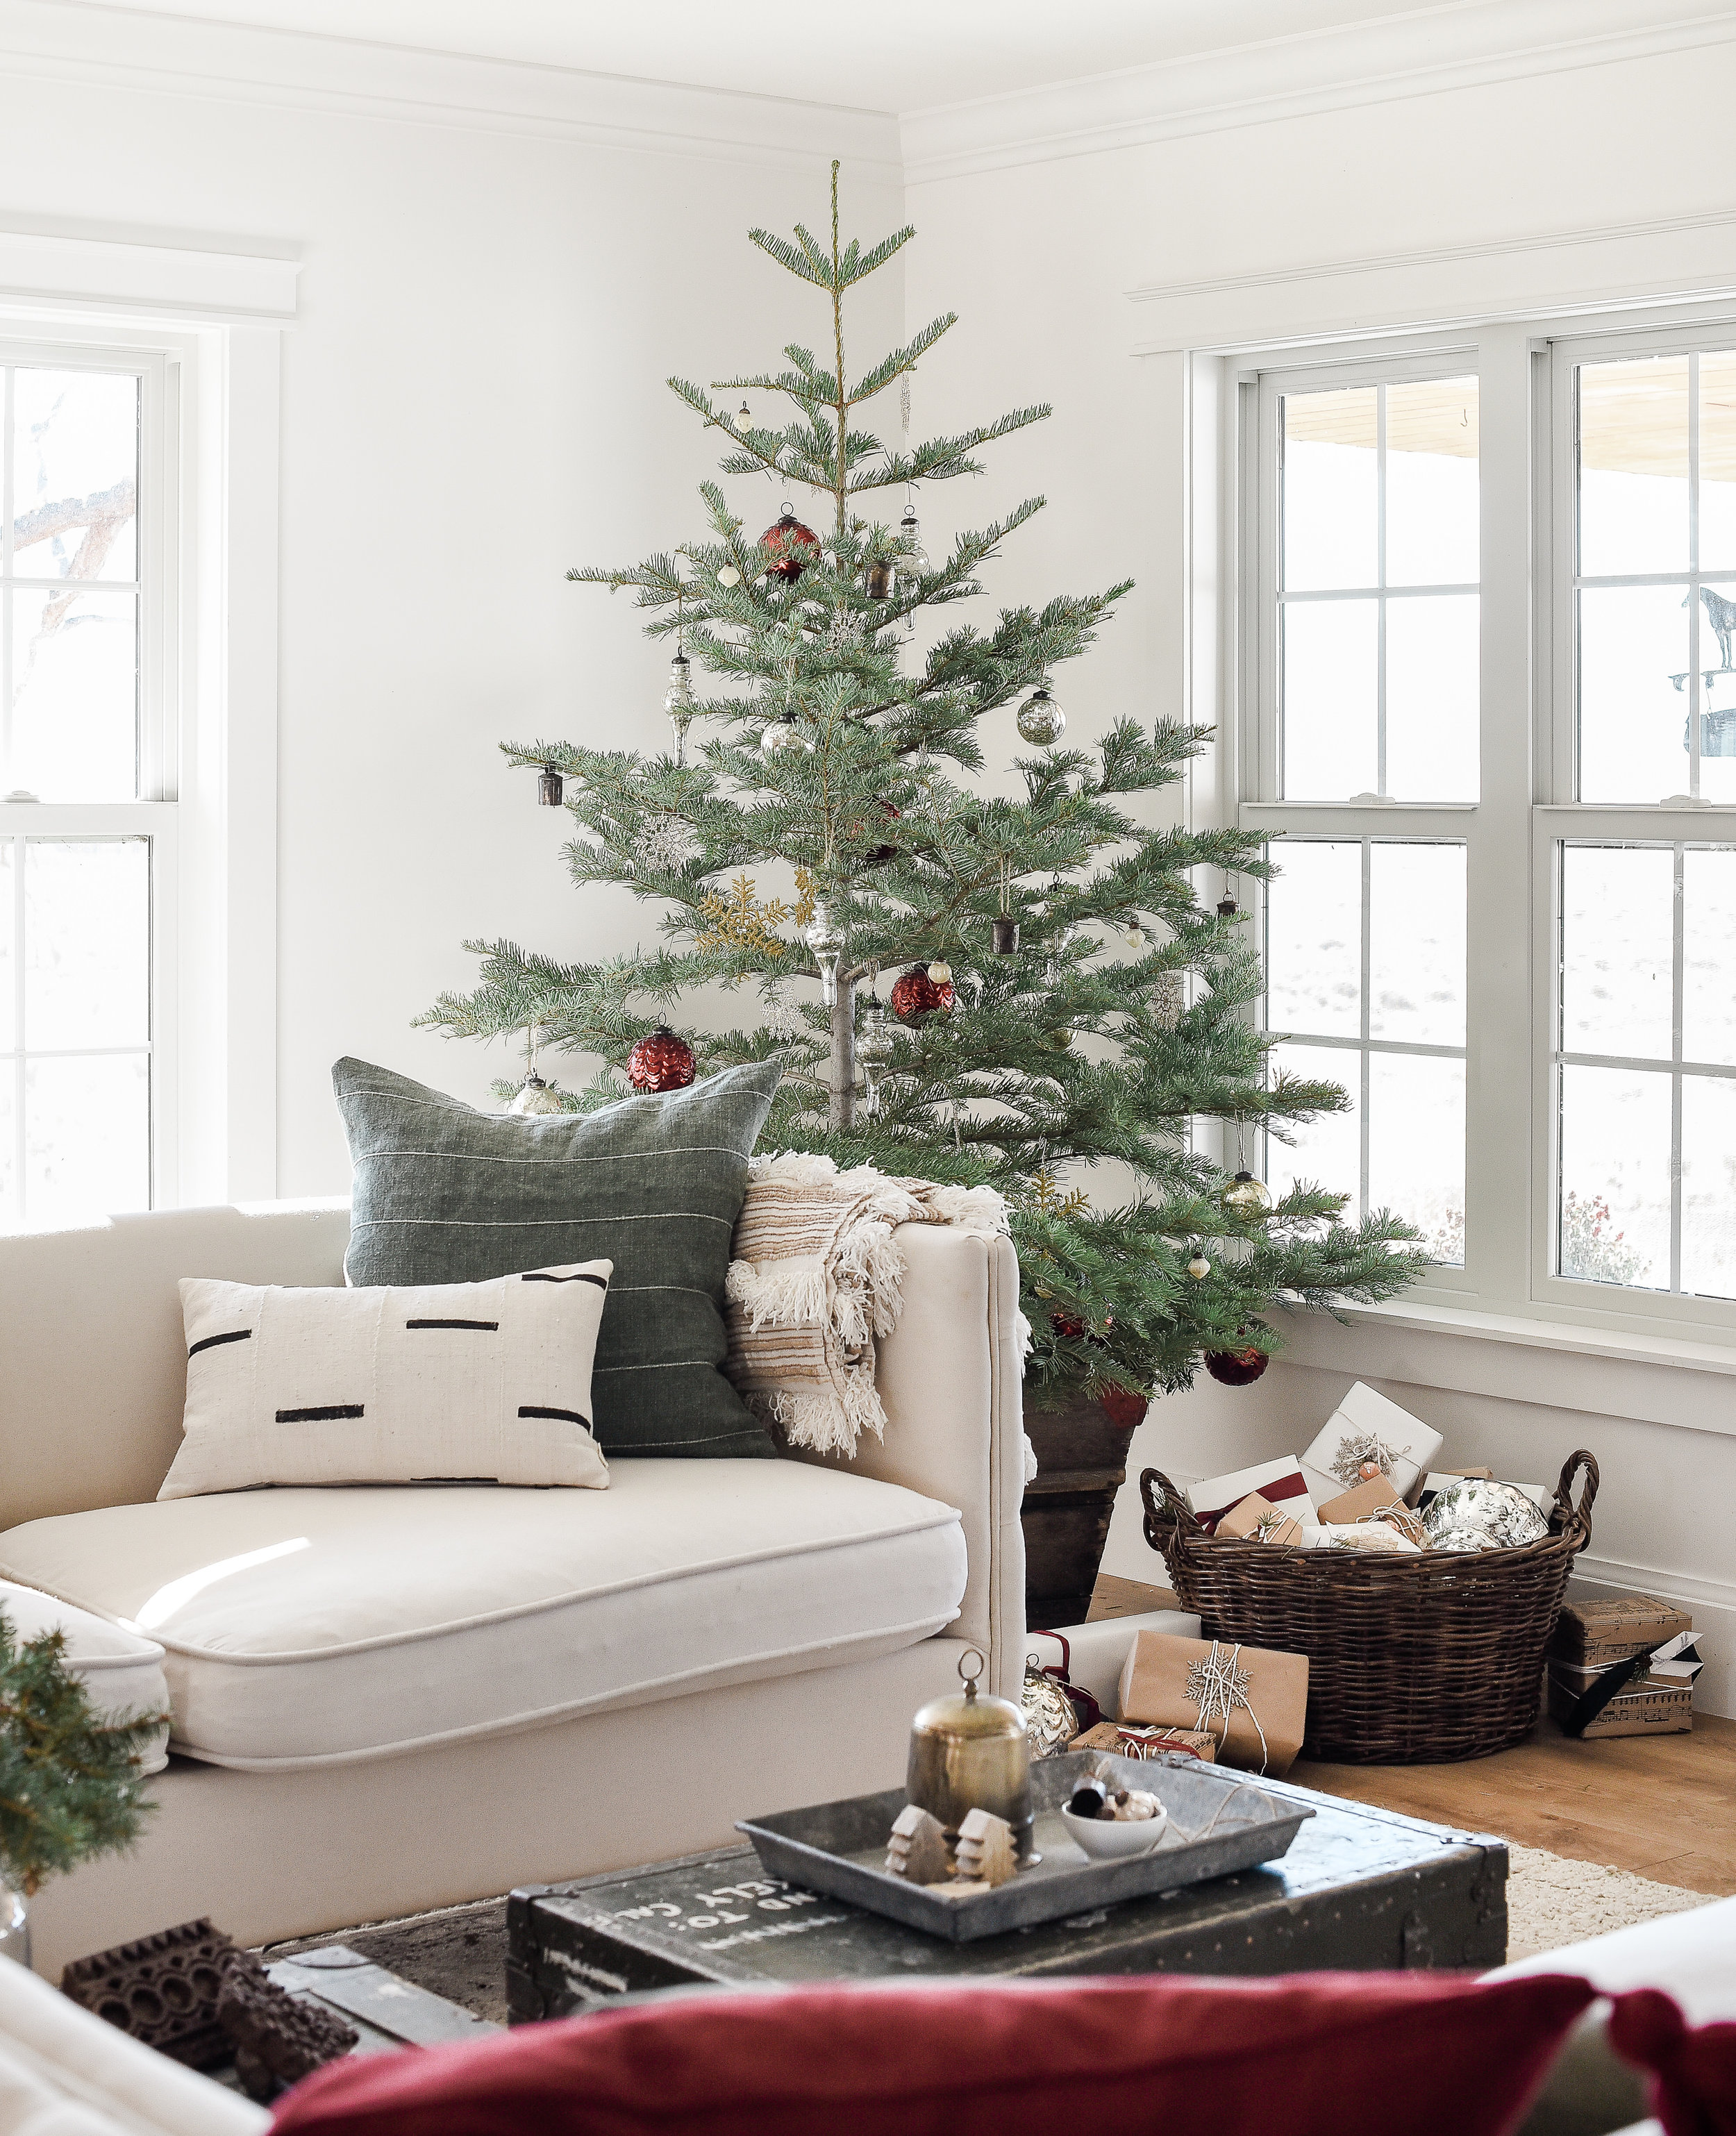 Beautiful farmhouse Christmas decor with Vintage Christmas Decorations on minimal live tree from boxwoodavenue.com | #farmhousechristmas #christmasdecorating